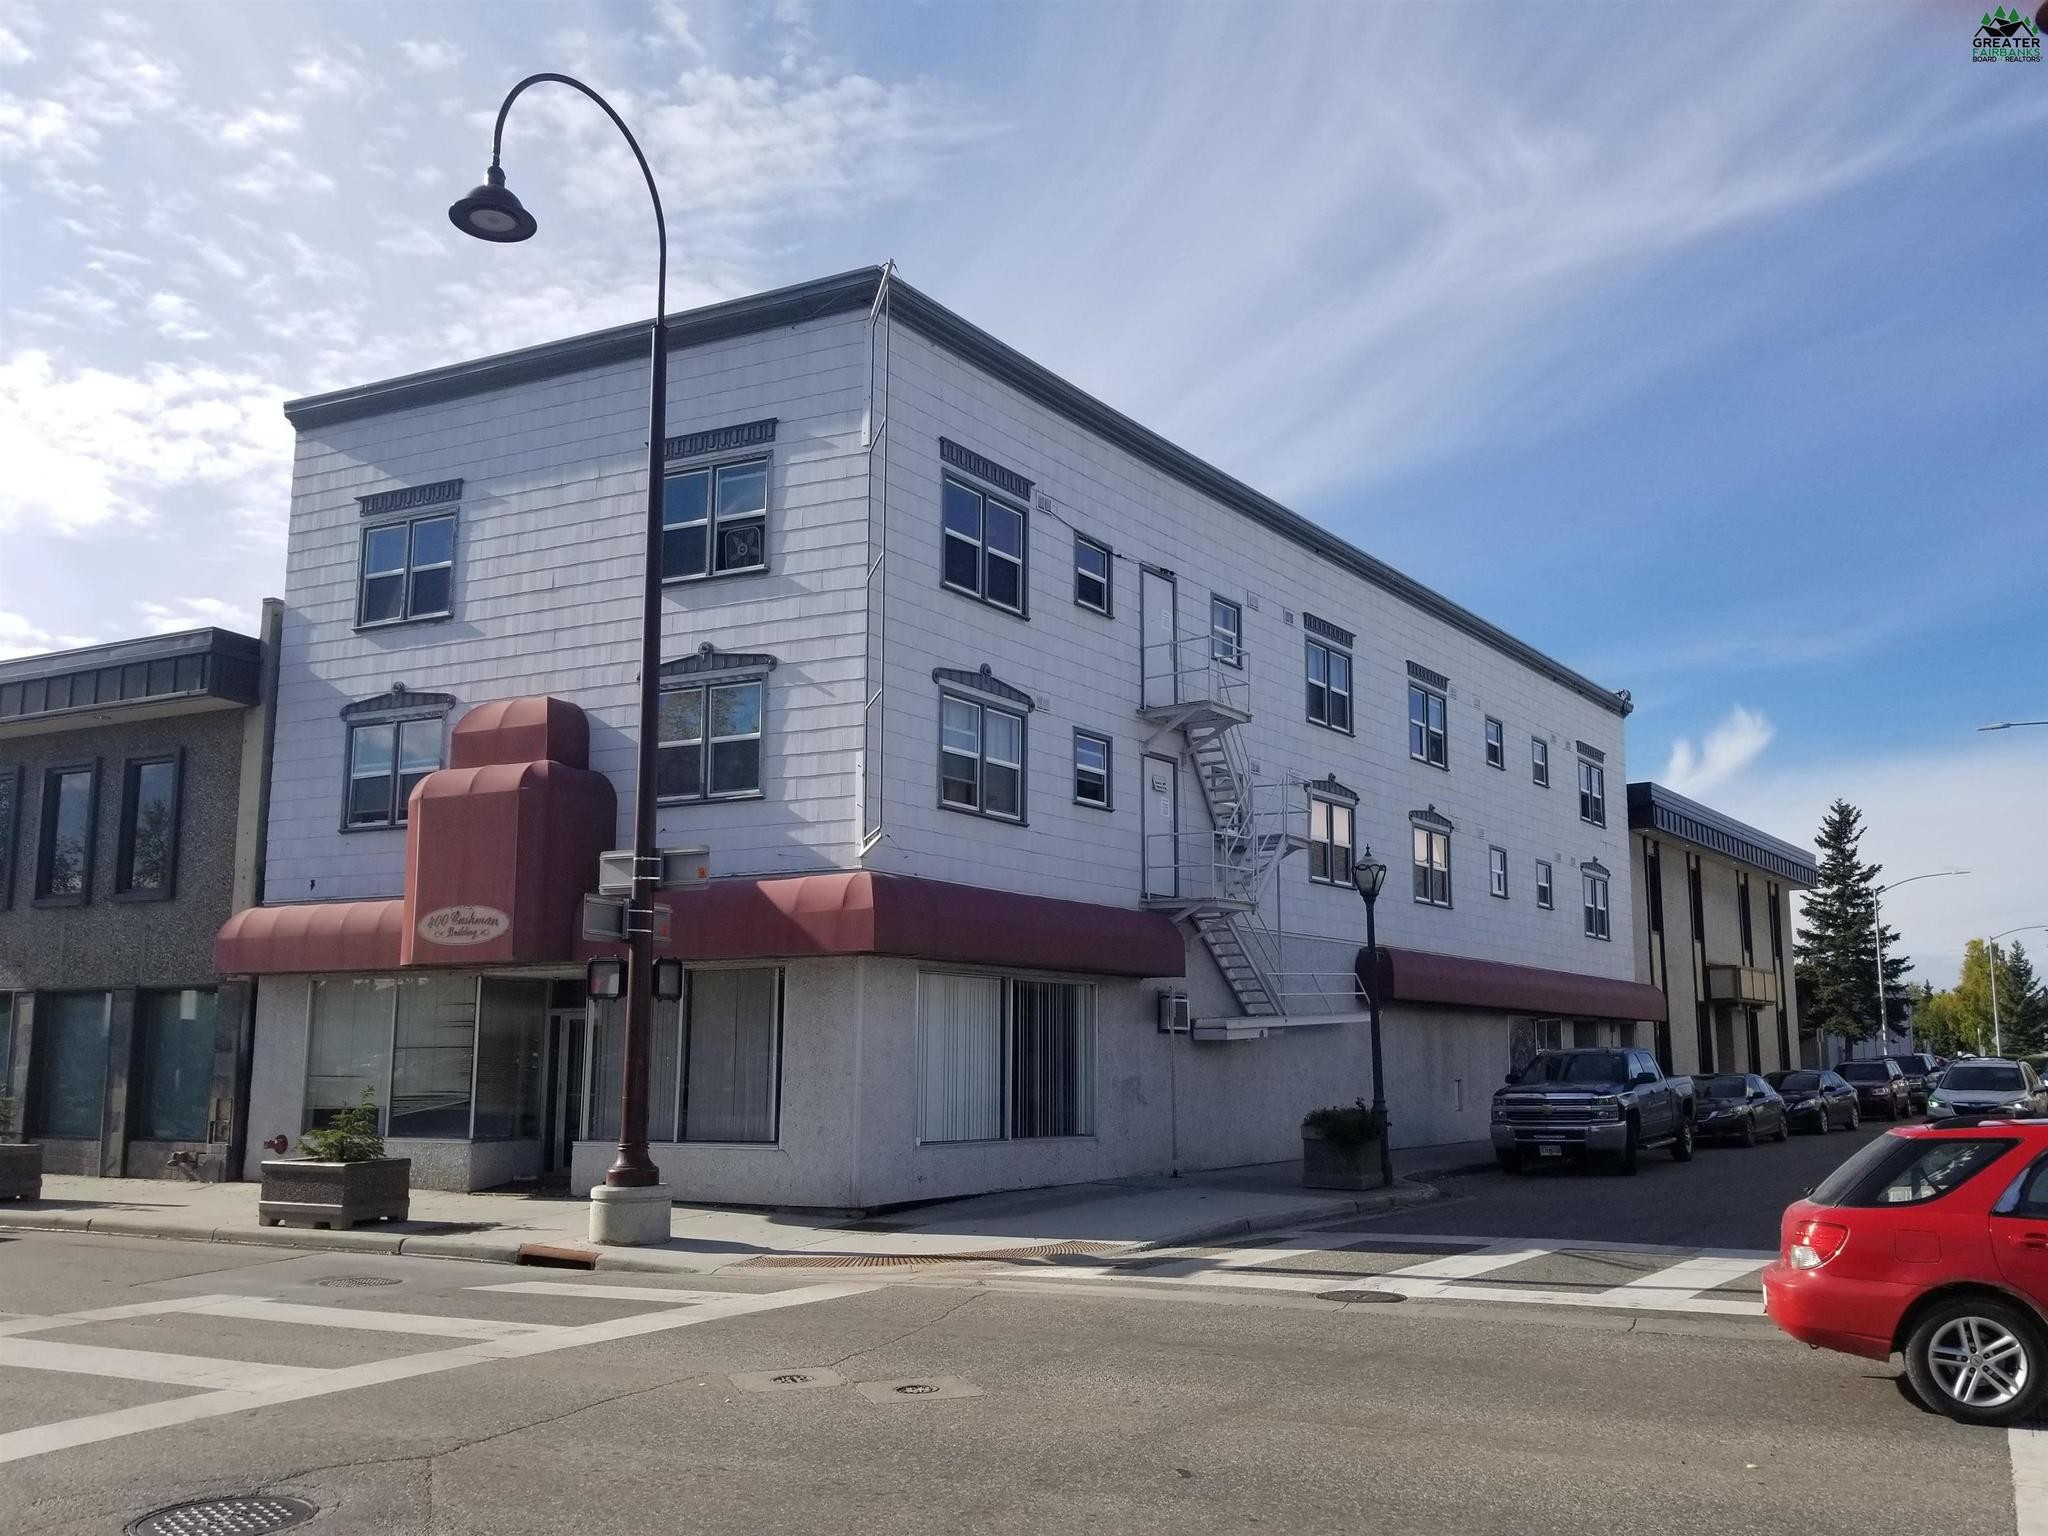 Multi-Family Home In Downtown Fairbanks